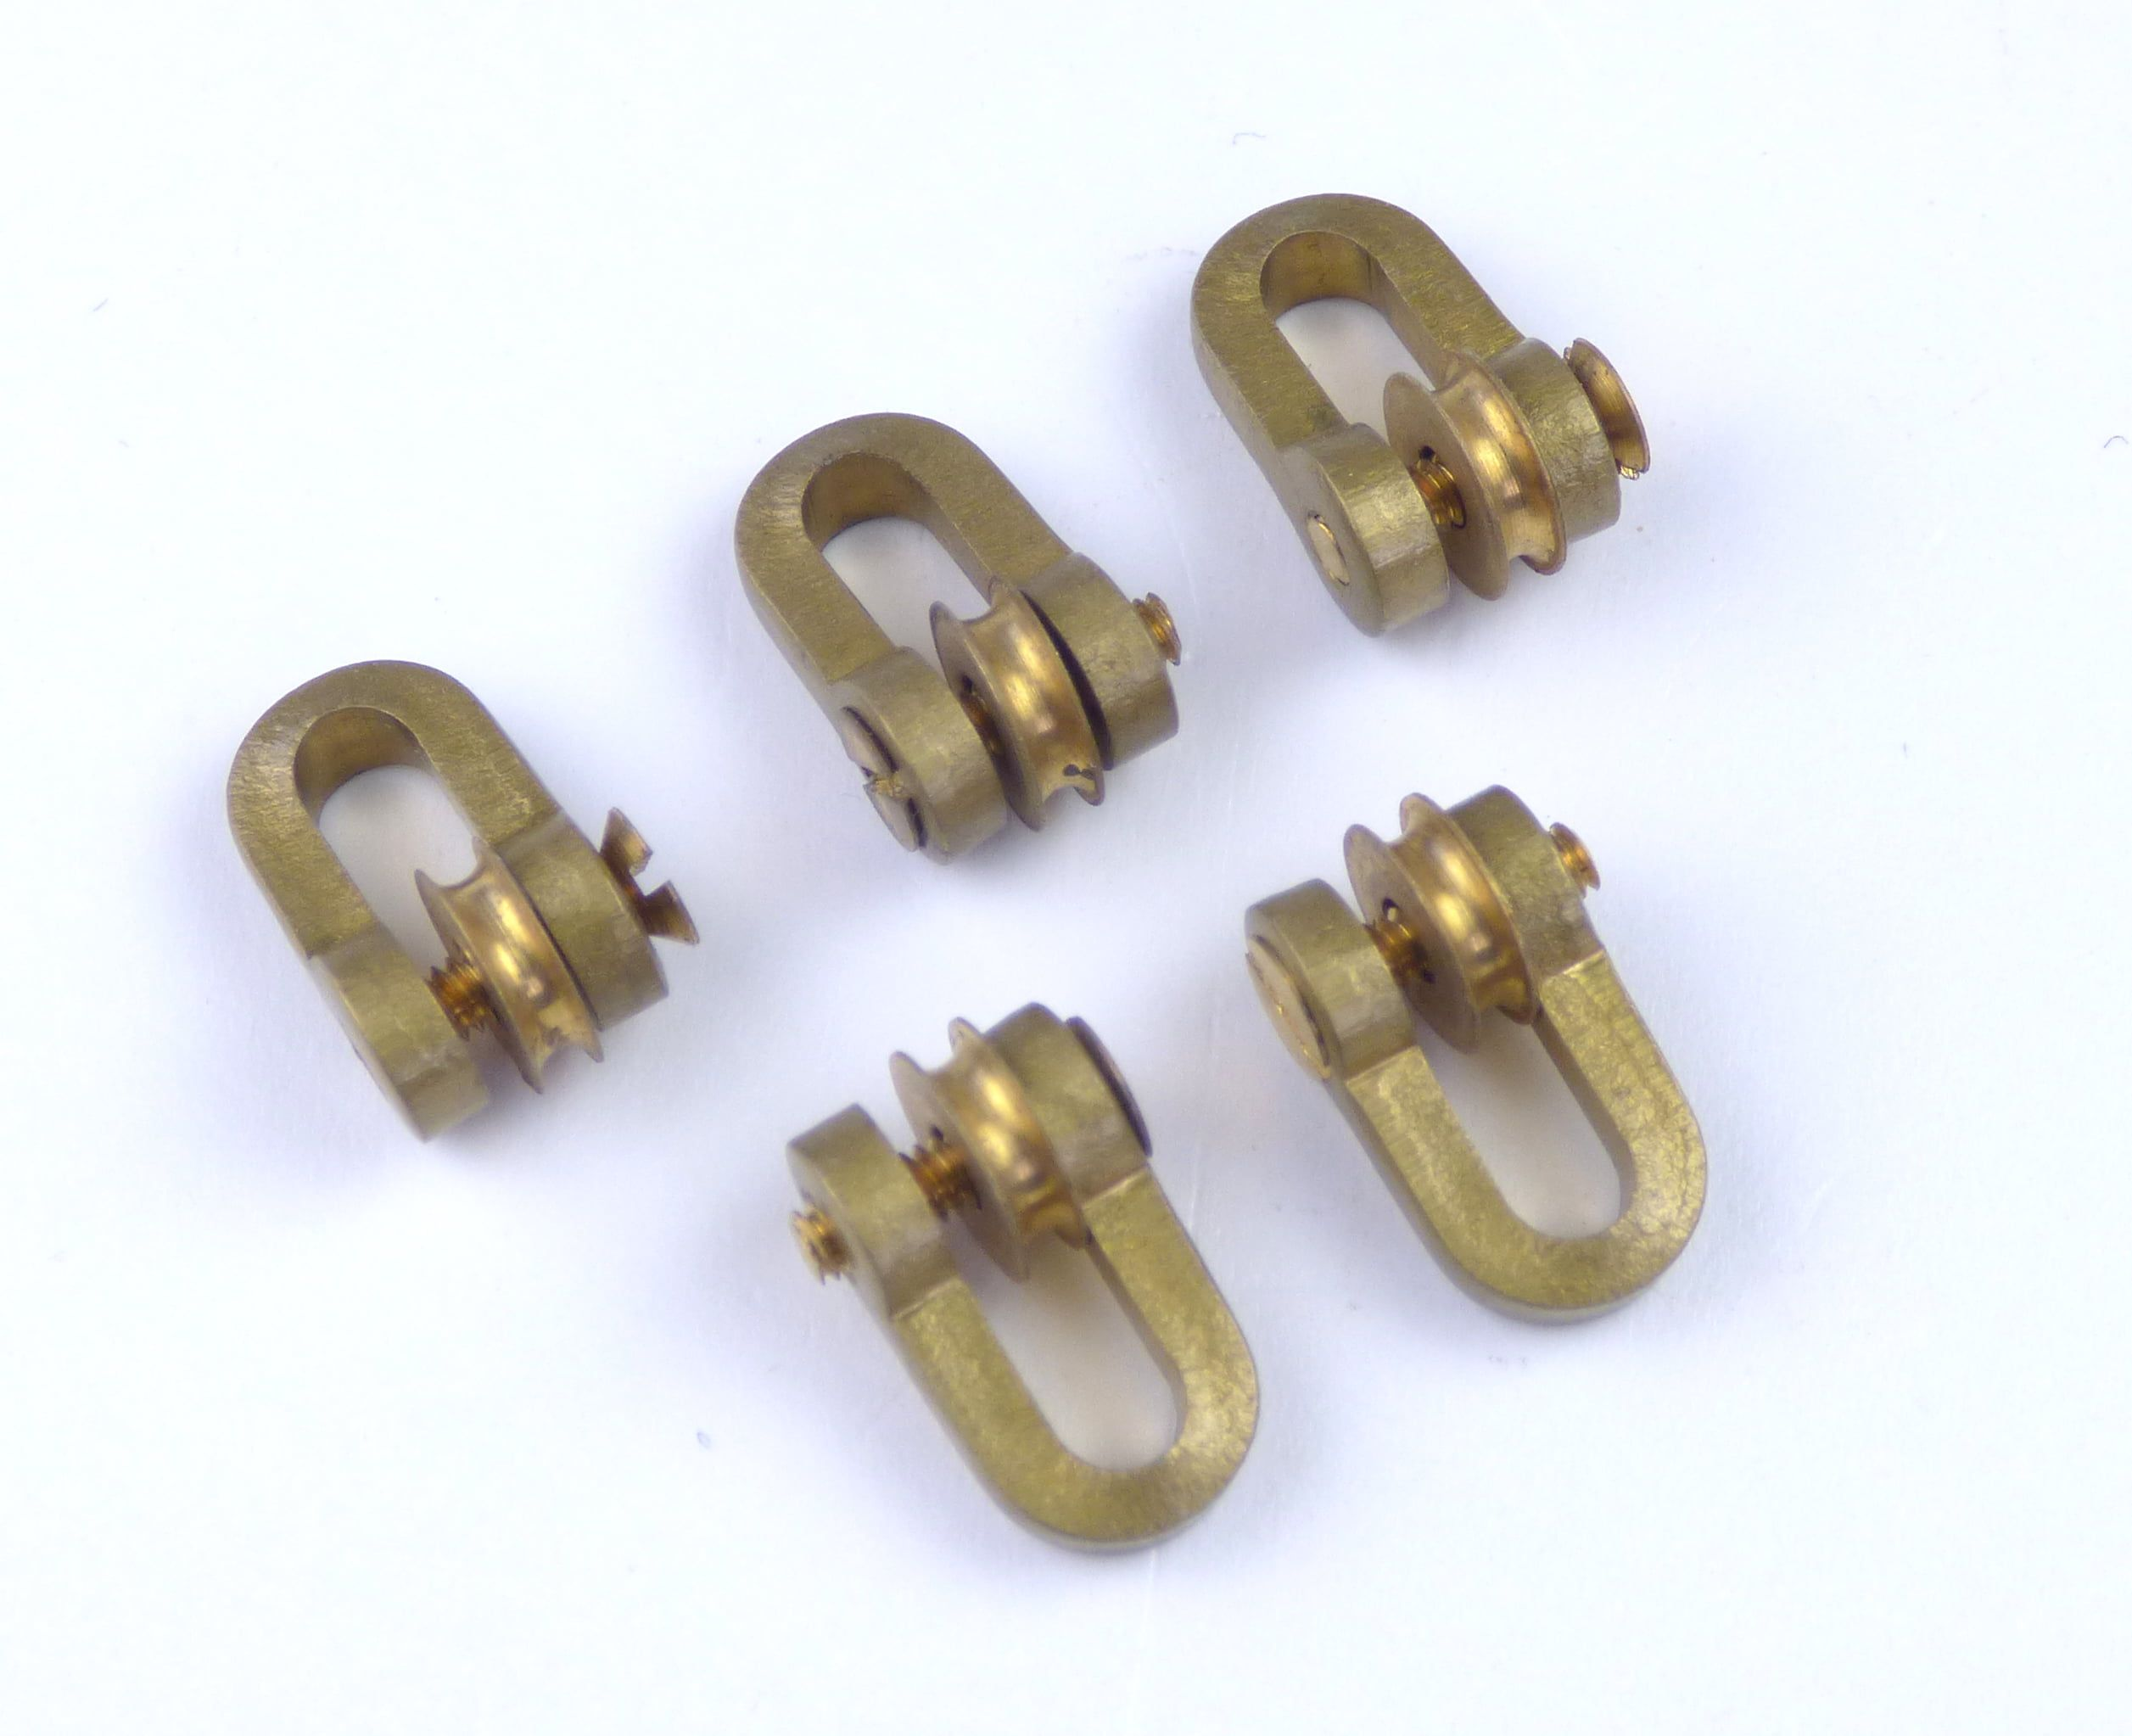 Aero Naut Brass Shackles With Roller